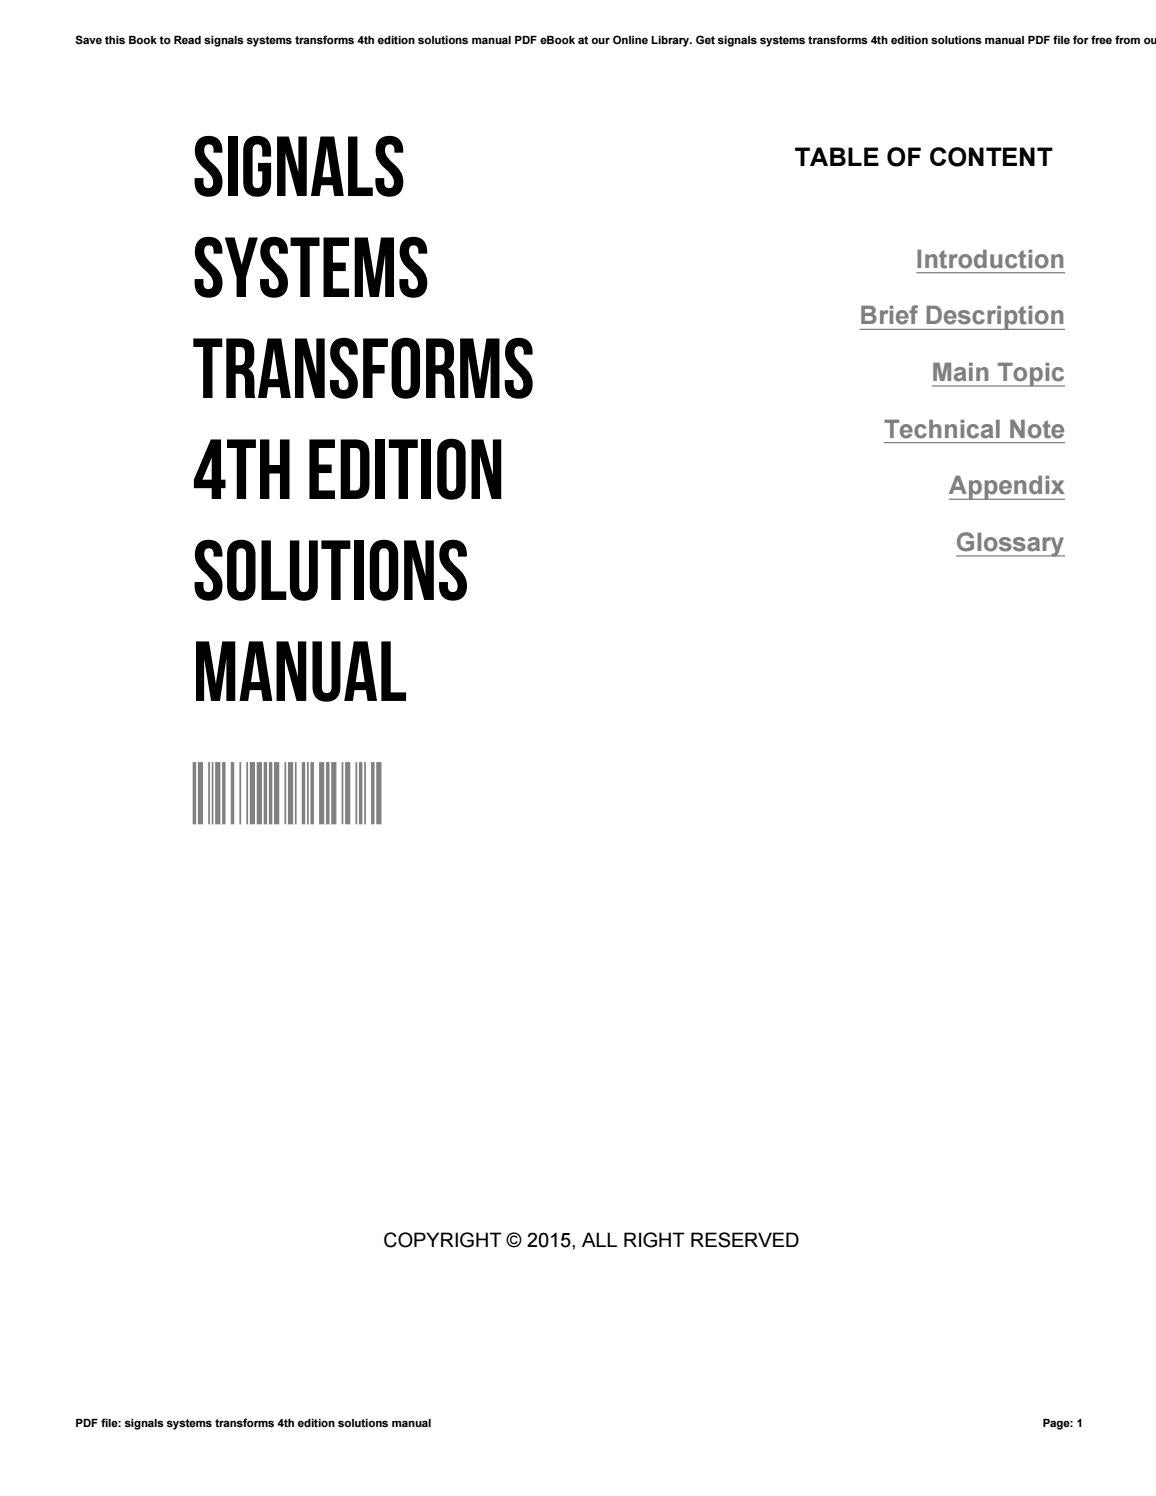 Signals systems transforms 4th edition solutions manual by